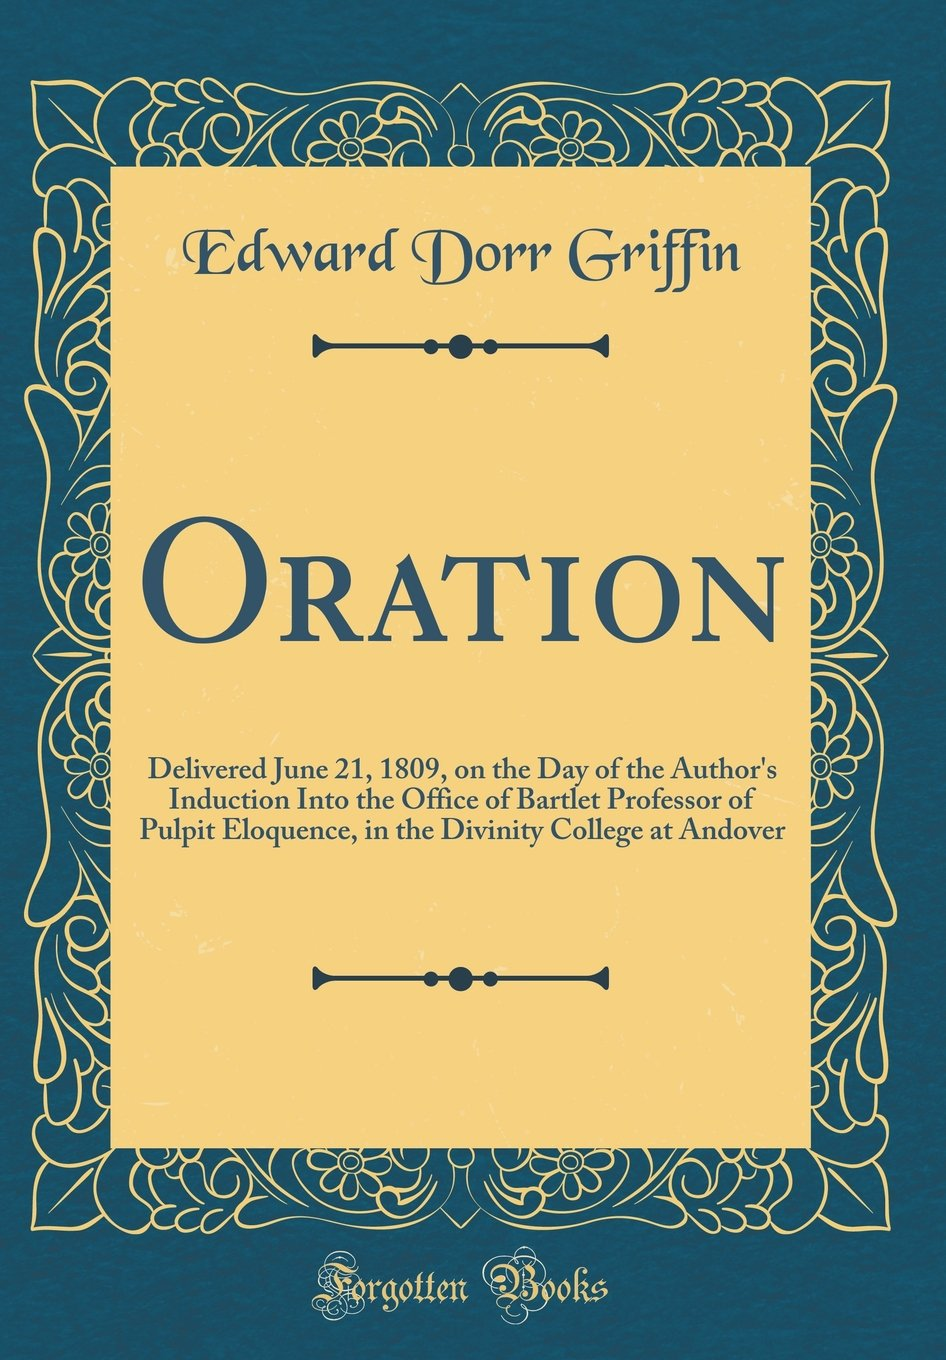 Download Oration: Delivered June 21, 1809, on the Day of the Author's Induction Into the Office of Bartlet Professor of Pulpit Eloquence, in the Divinity College at Andover (Classic Reprint) pdf epub